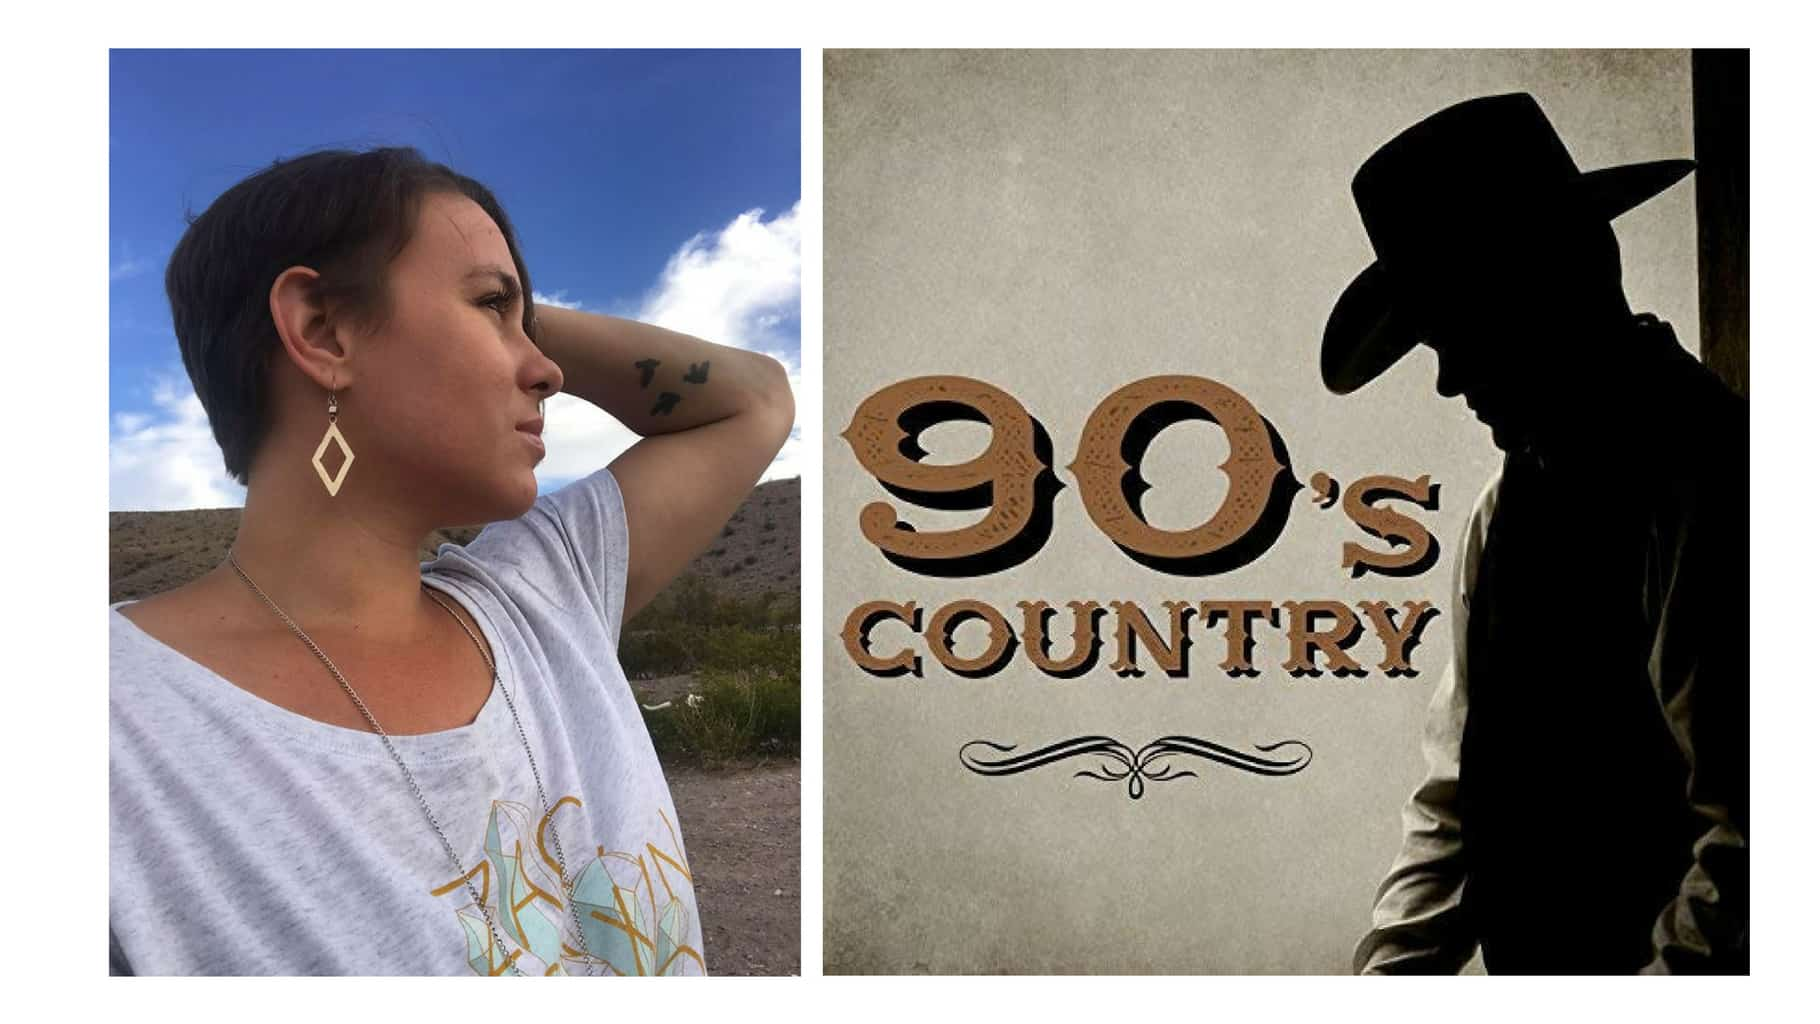 DJ Hot Wheels Spins 90's Country